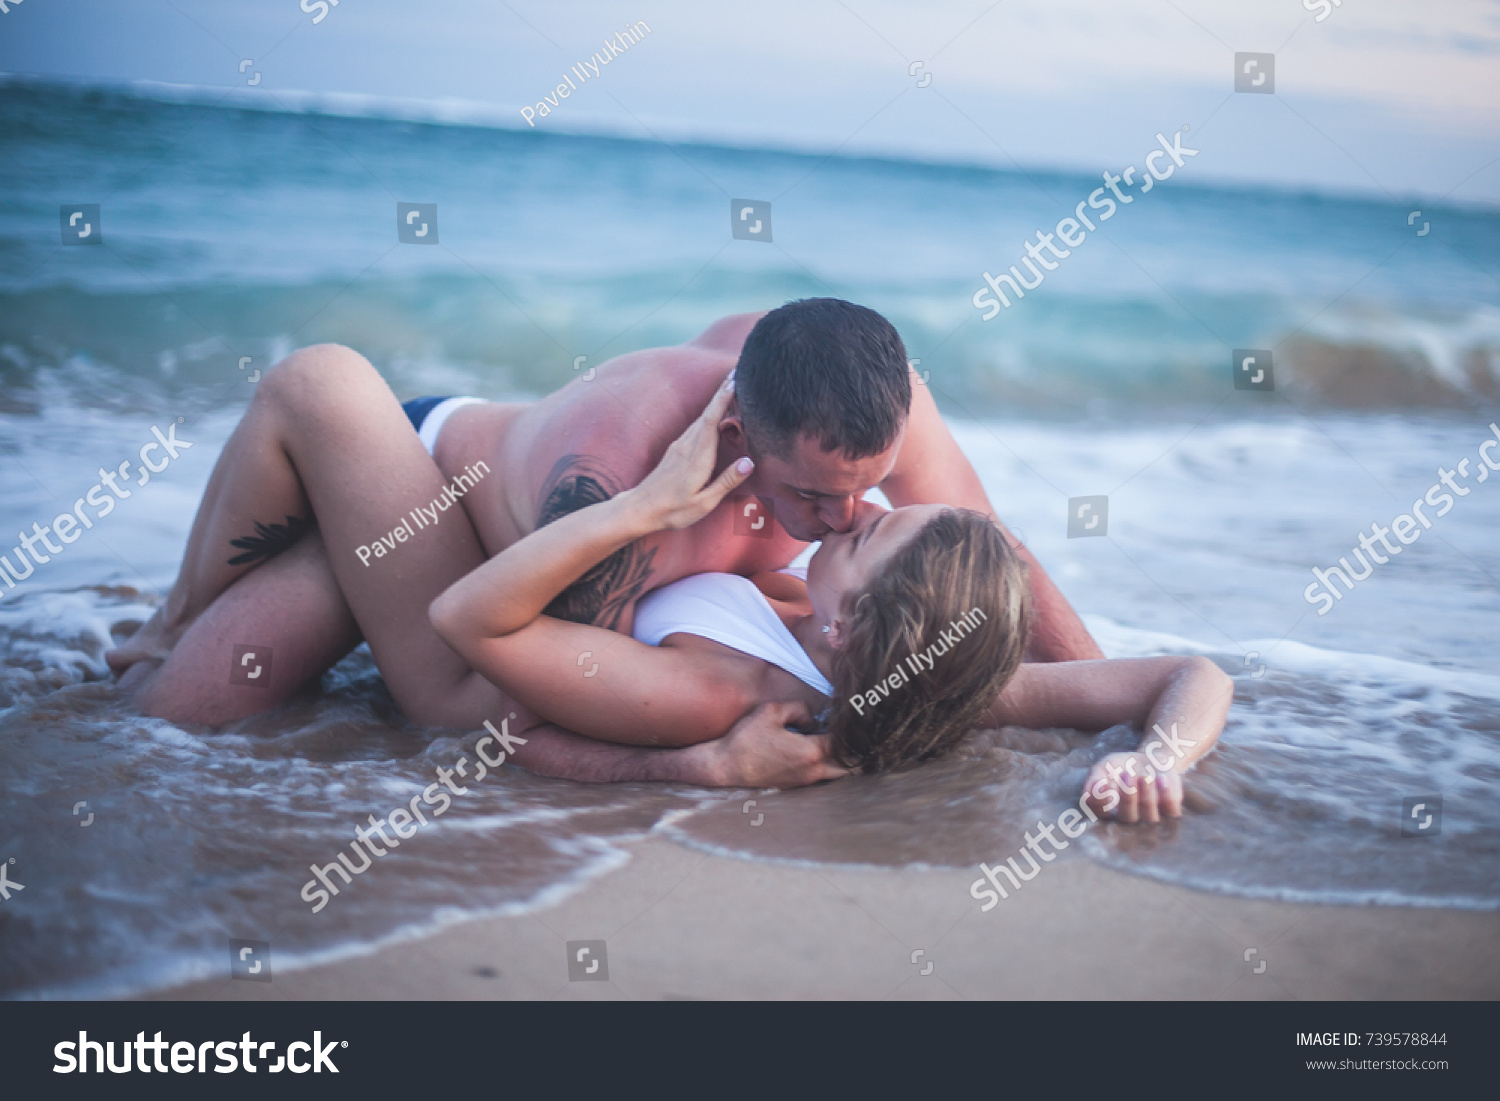 Will couples erotic kissing are